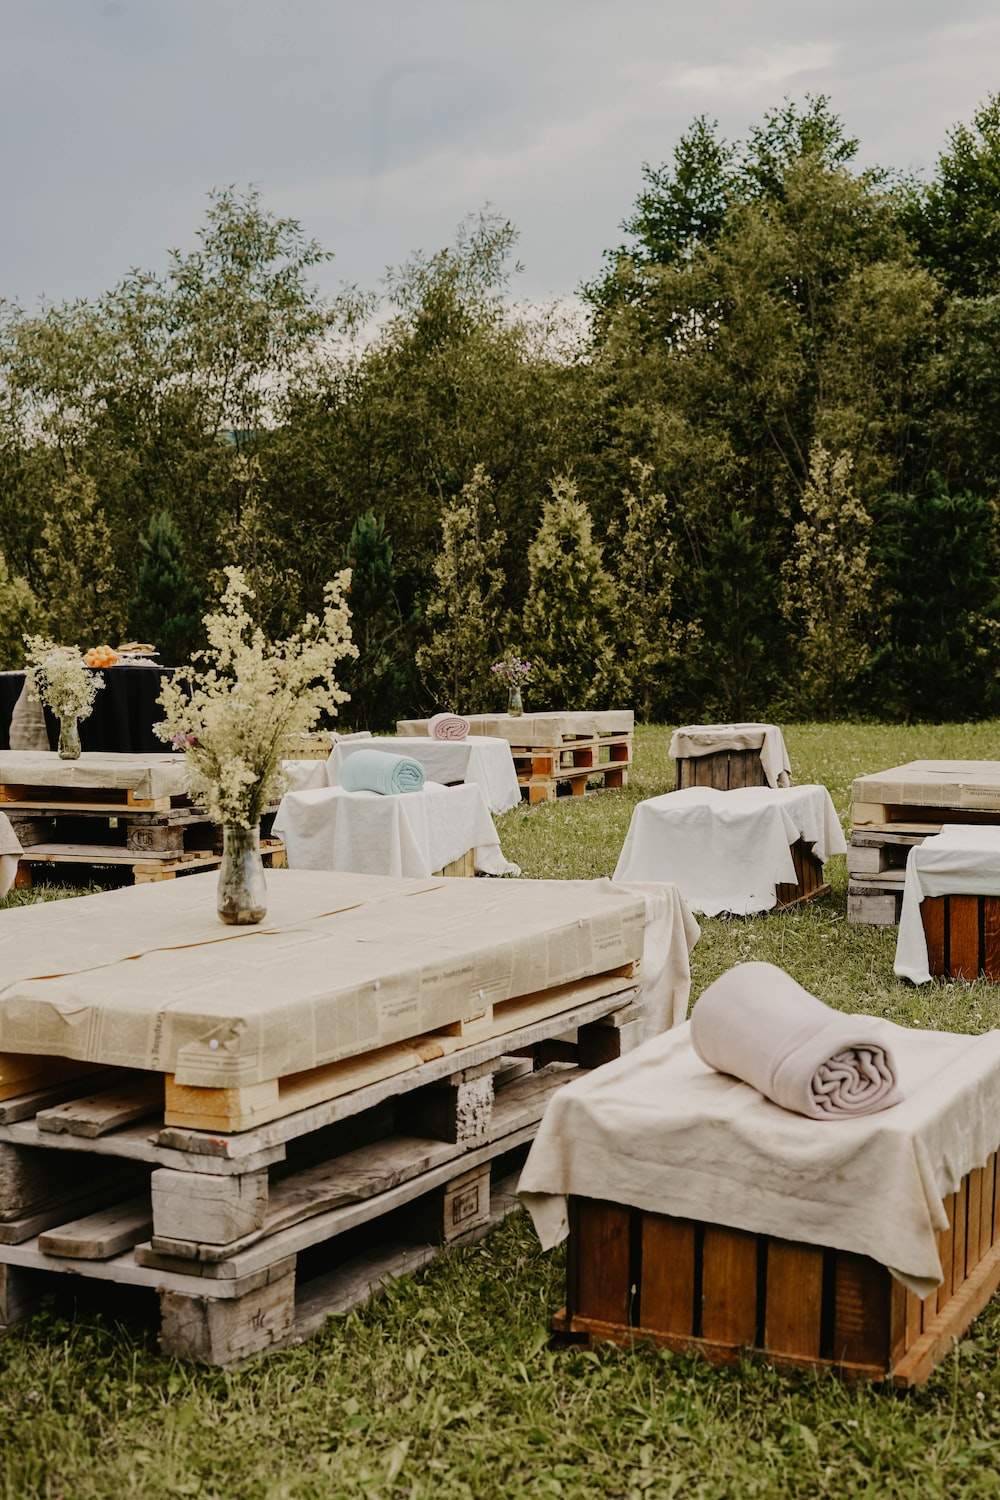 tables and chairs on grass